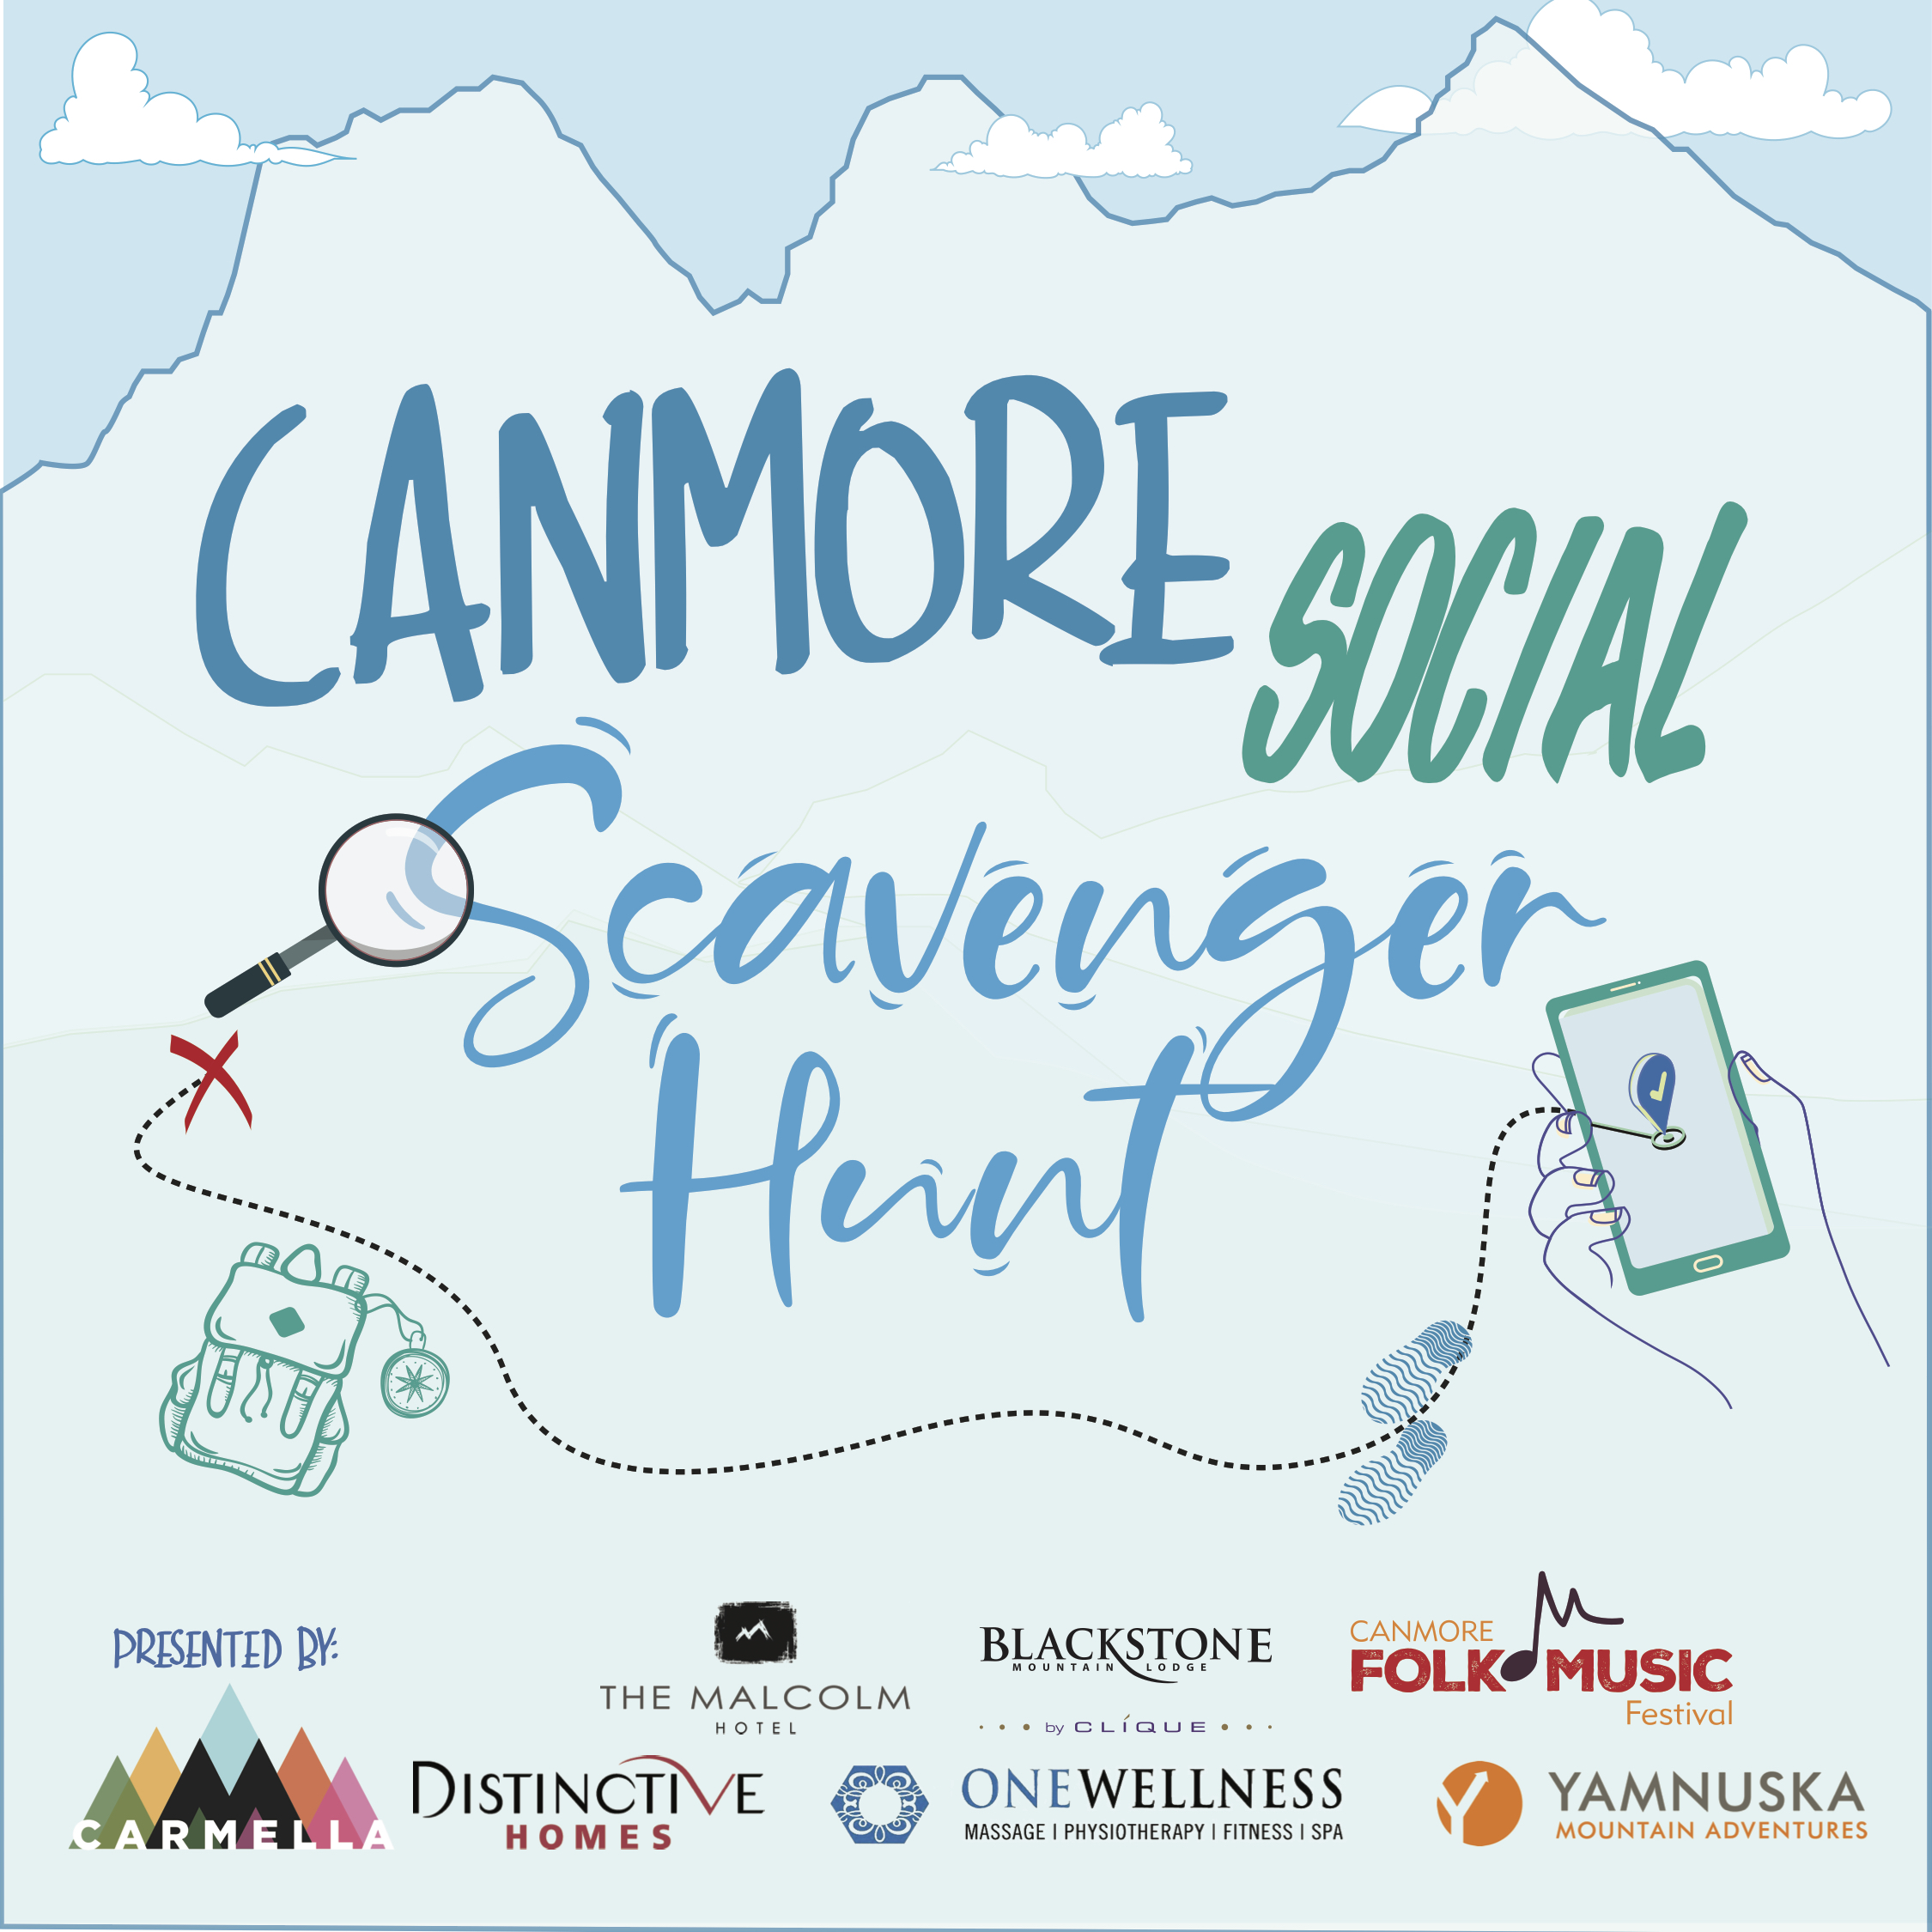 Canmore Social Scavenger Hunt